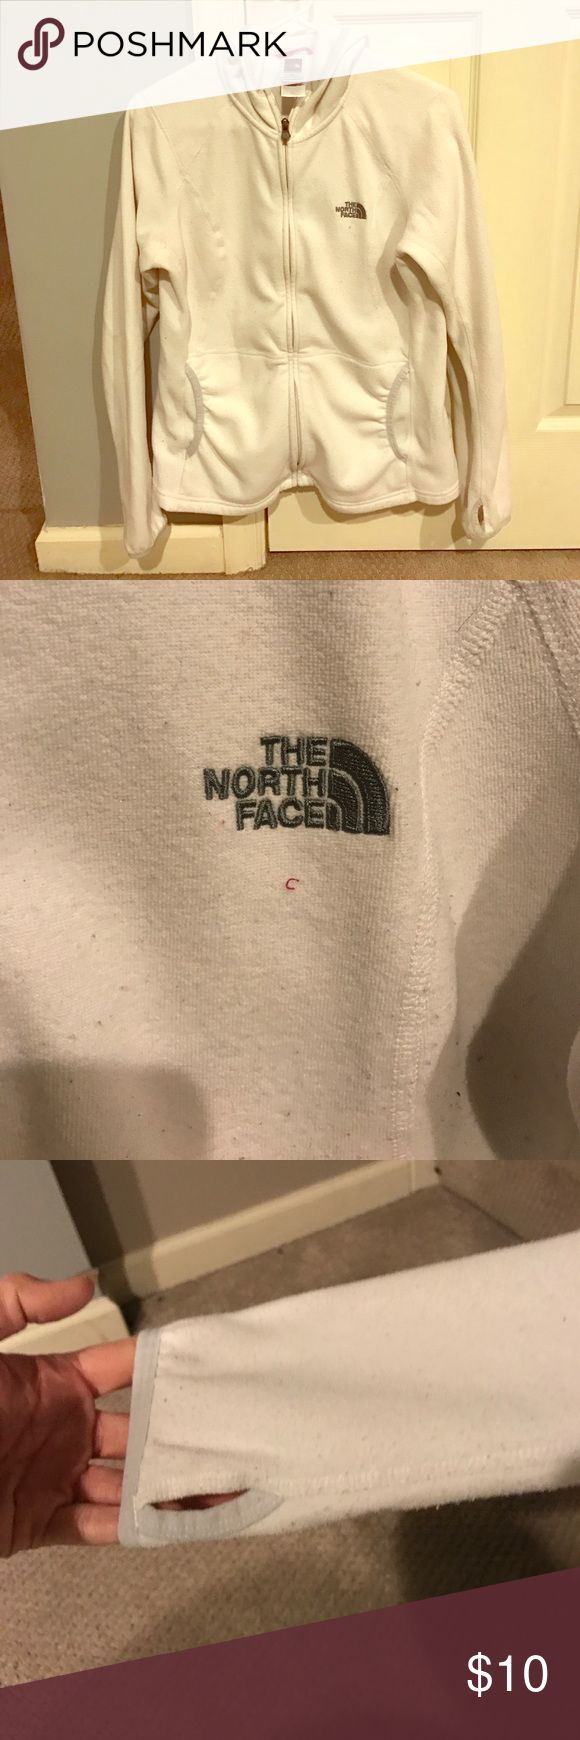 """North Face Hooded White Zip Up. Fair condition. Lightweight w/ hood.I wore this under my """"winter jackets"""" as an extra layer. Let me know if you want anymore details or pictures. Offers welcome. Bundle & Save. North Face Jackets & Coats"""